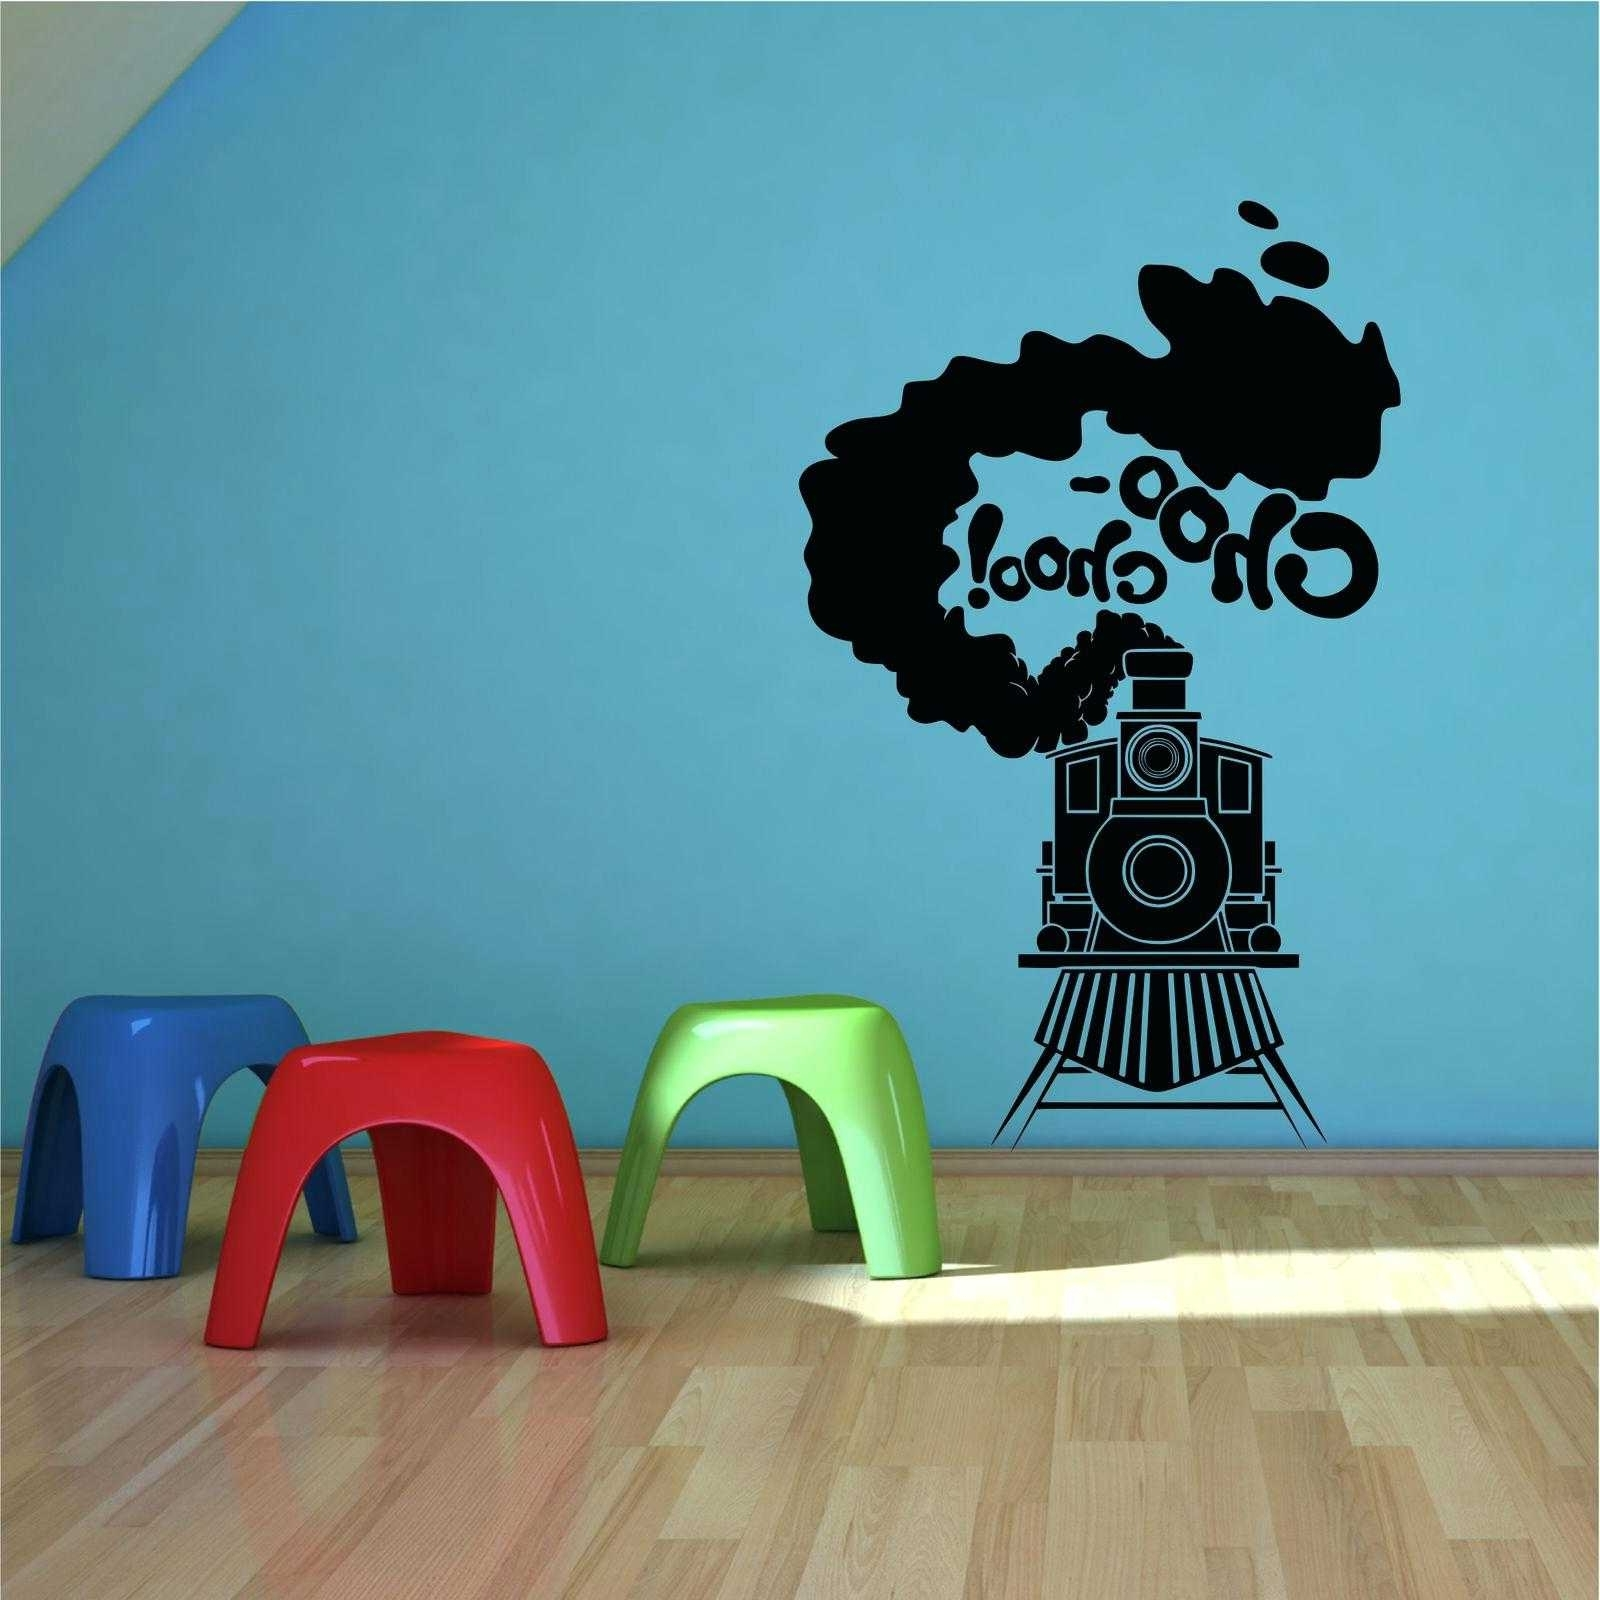 Wall Art For Teens Within Widely Used Outstanding Wall Art For Teenage Boys Also Decals Teen (View 13 of 15)